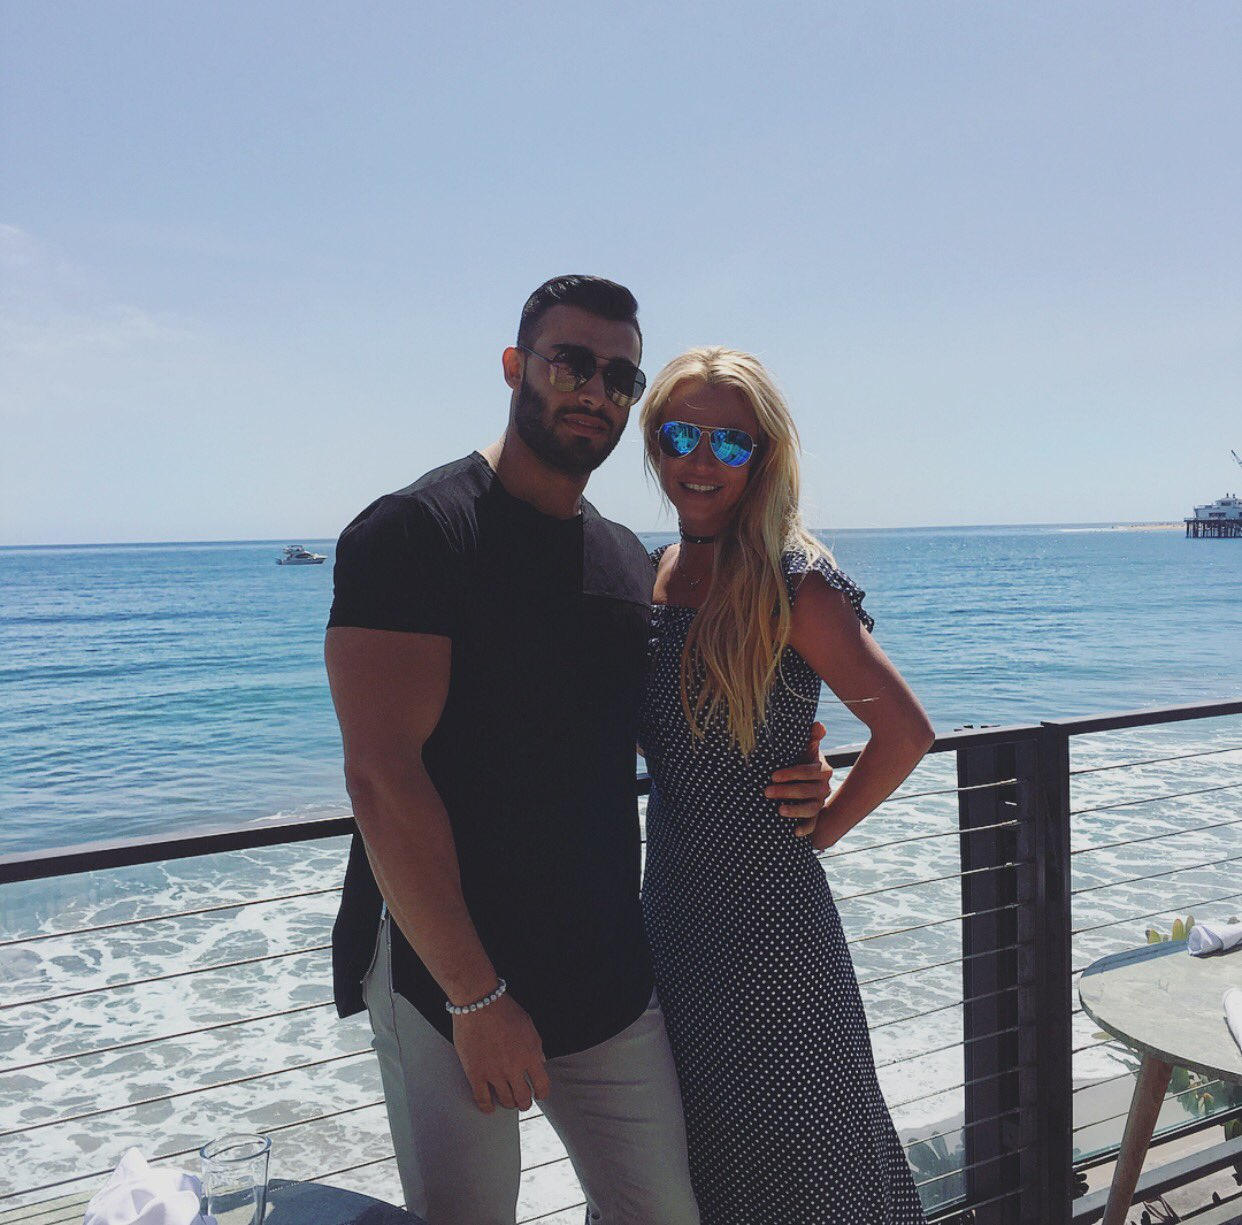 Beautiful day in Malibu with @SamAsghari0 ������ https://t.co/q92aGuMuG9